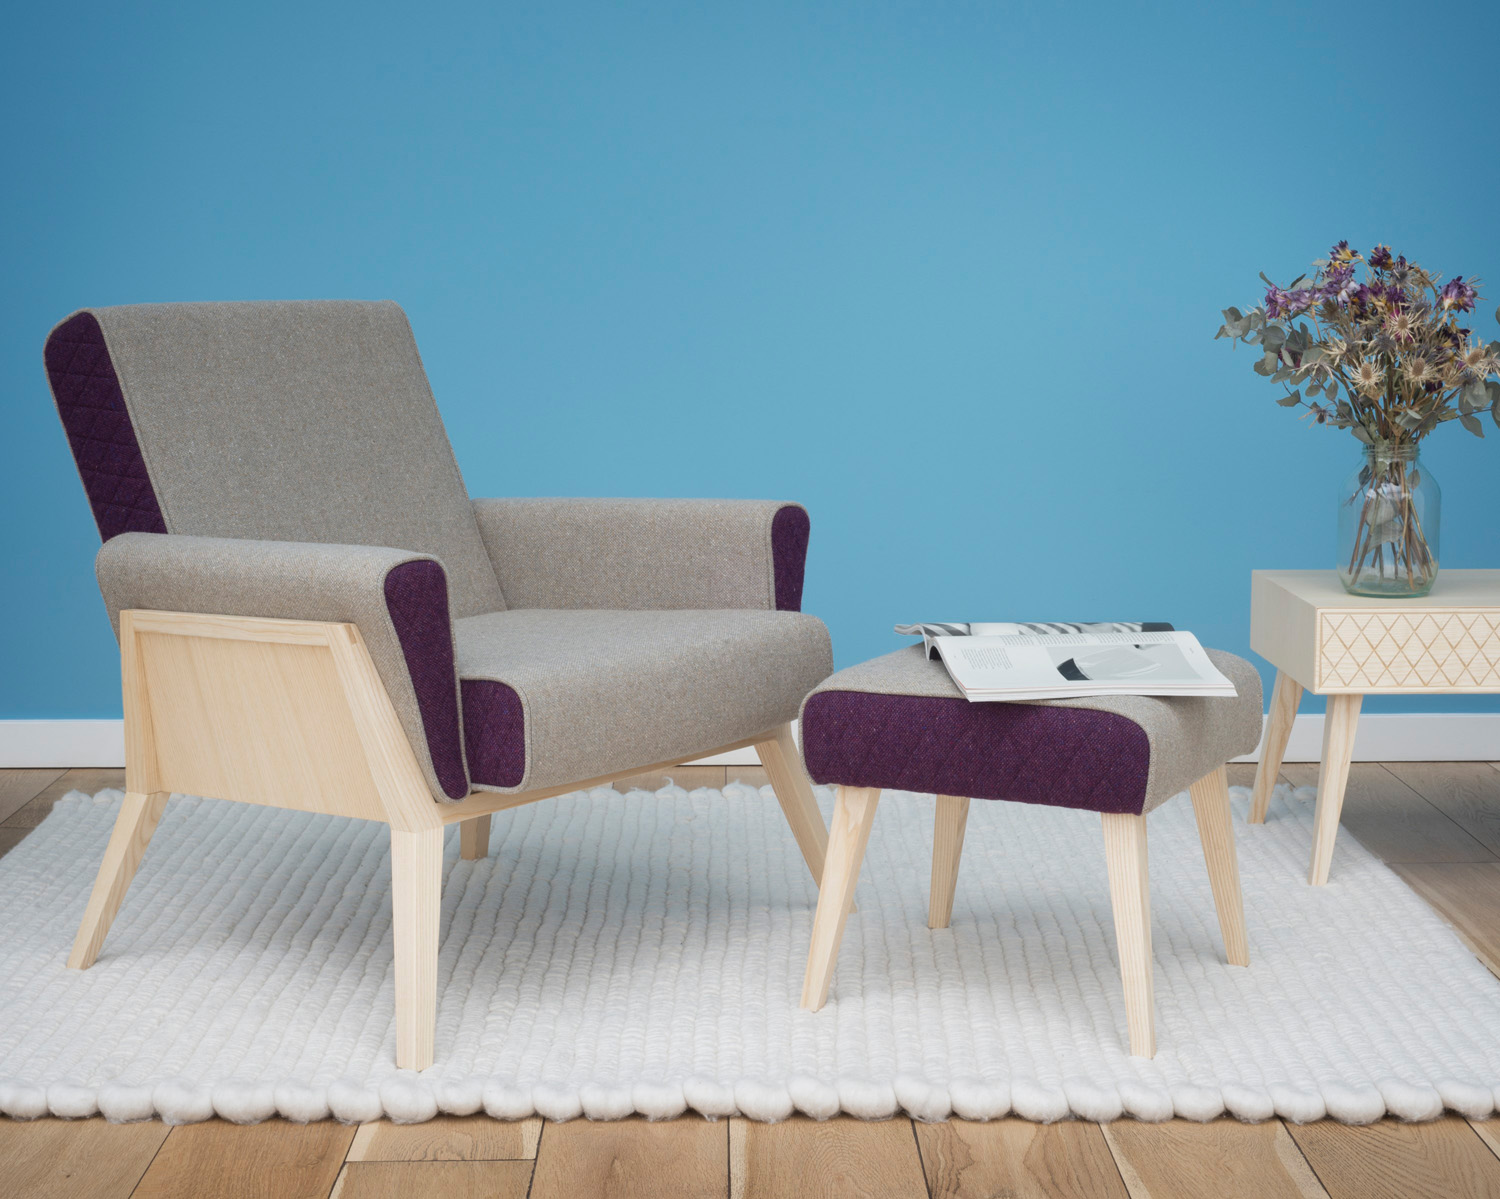 Æsh & Tweed armchair, footstool and coffeetable on Fat Sheep rug.  Photo Justin Barton